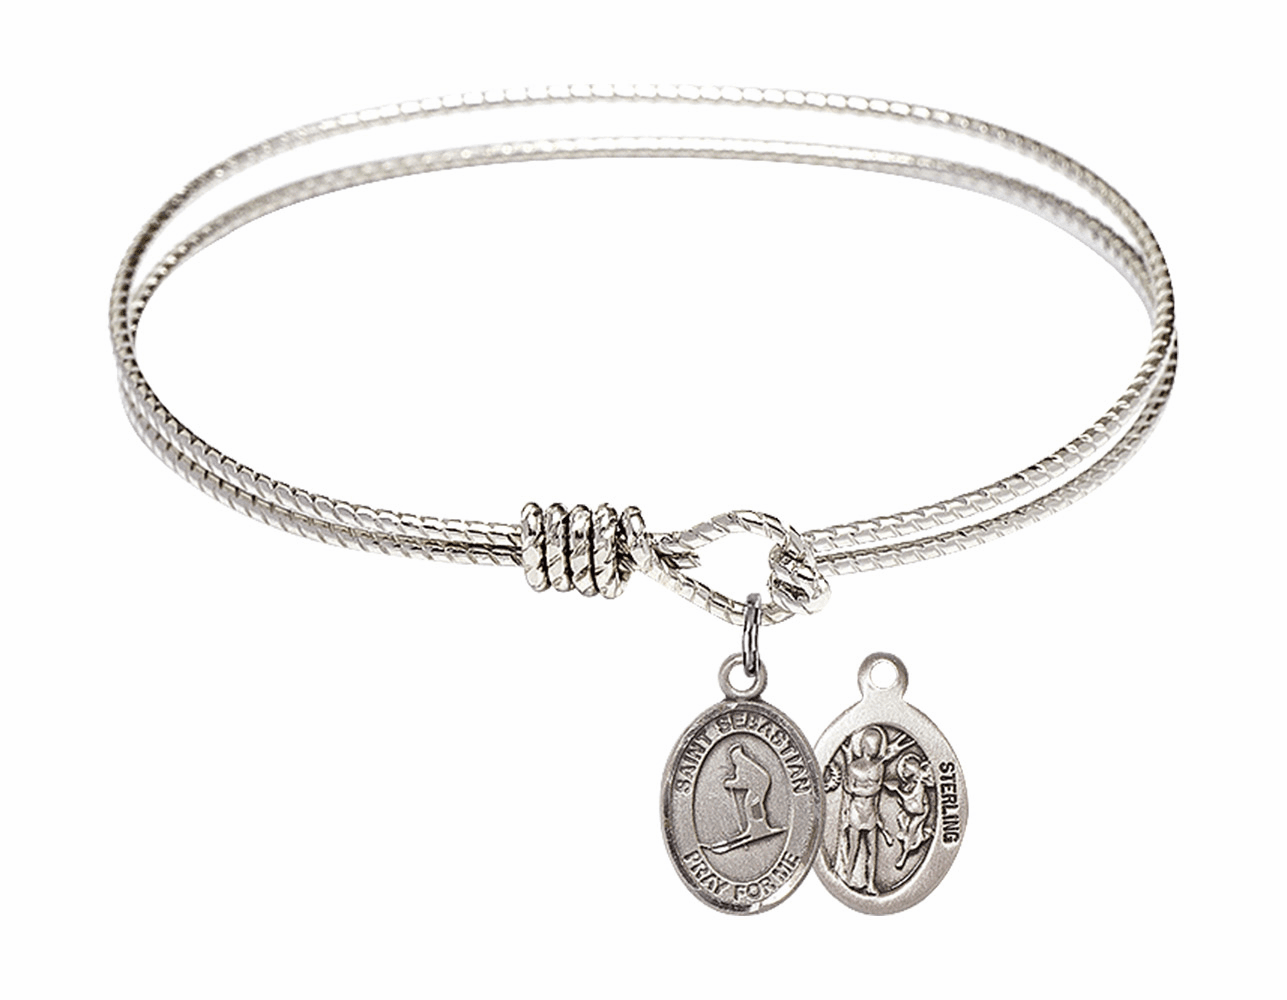 Twist Round Eye Hook St Sebastian Skiing Bangle Charm Bracelet by Bliss